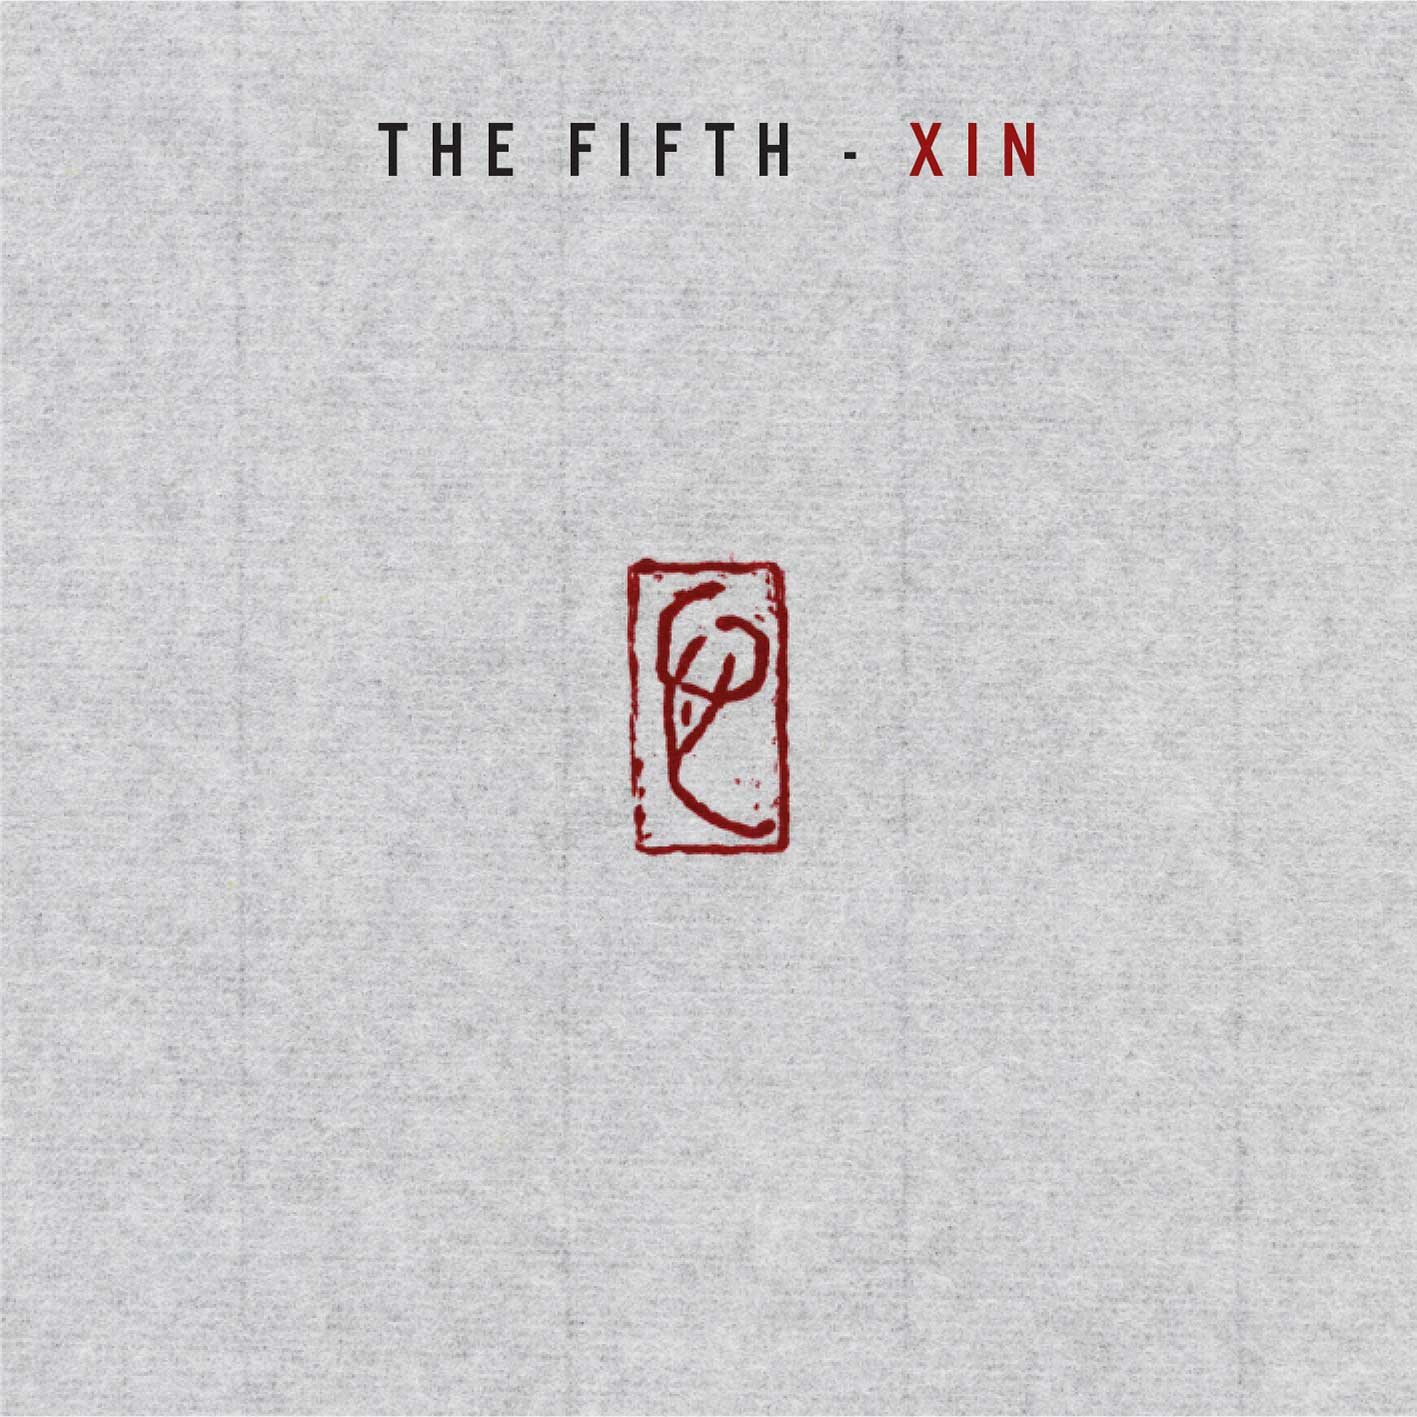 THE FIFTH – XIN